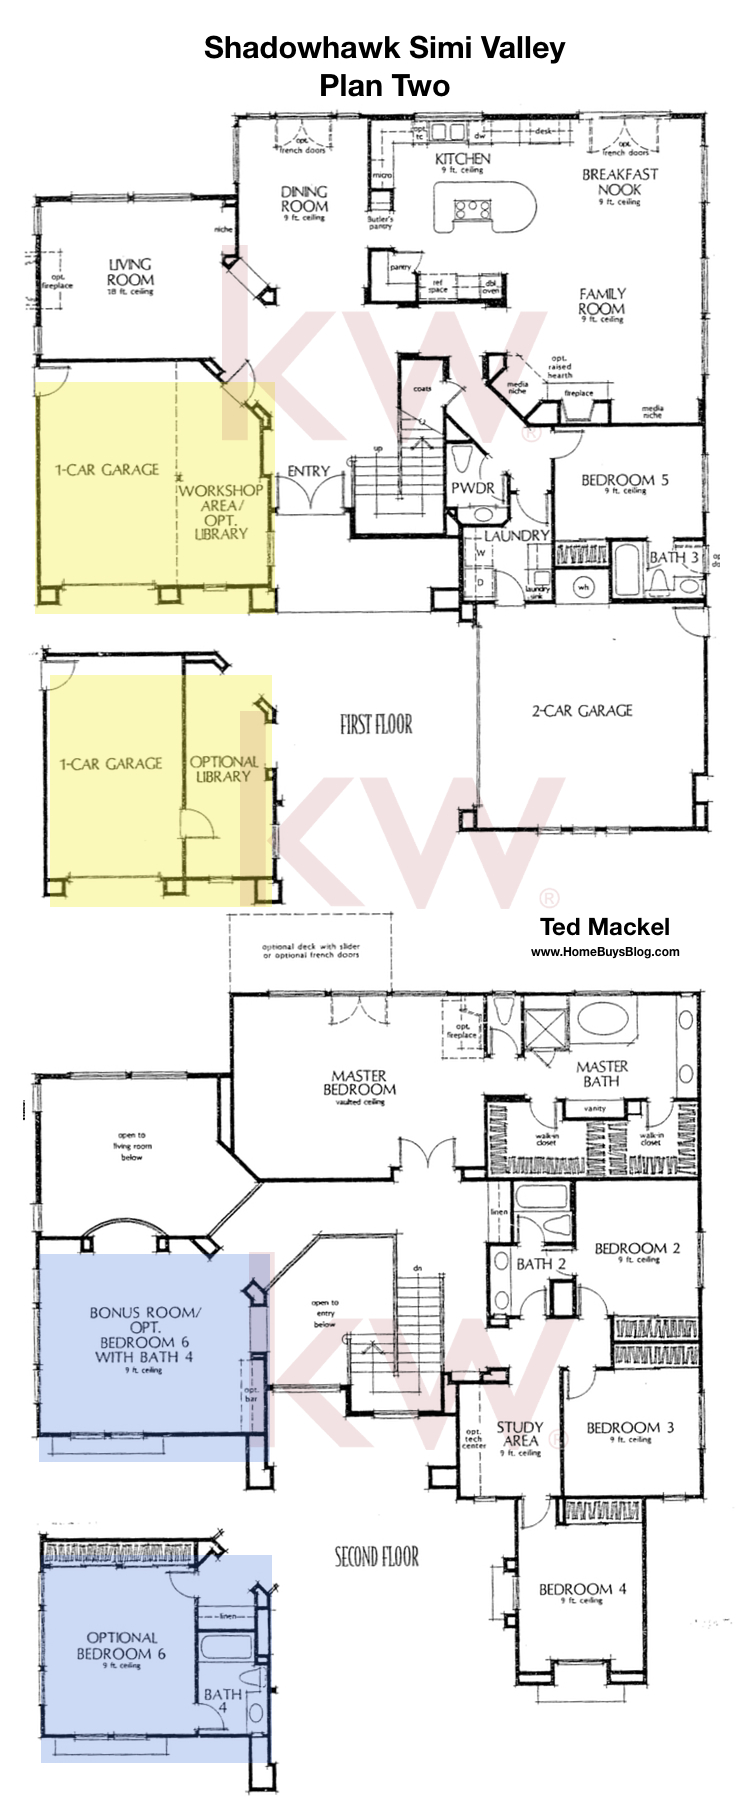 Shadowhawk Floor Plans Simi Valley California Interiors Inside Ideas Interiors design about Everything [magnanprojects.com]